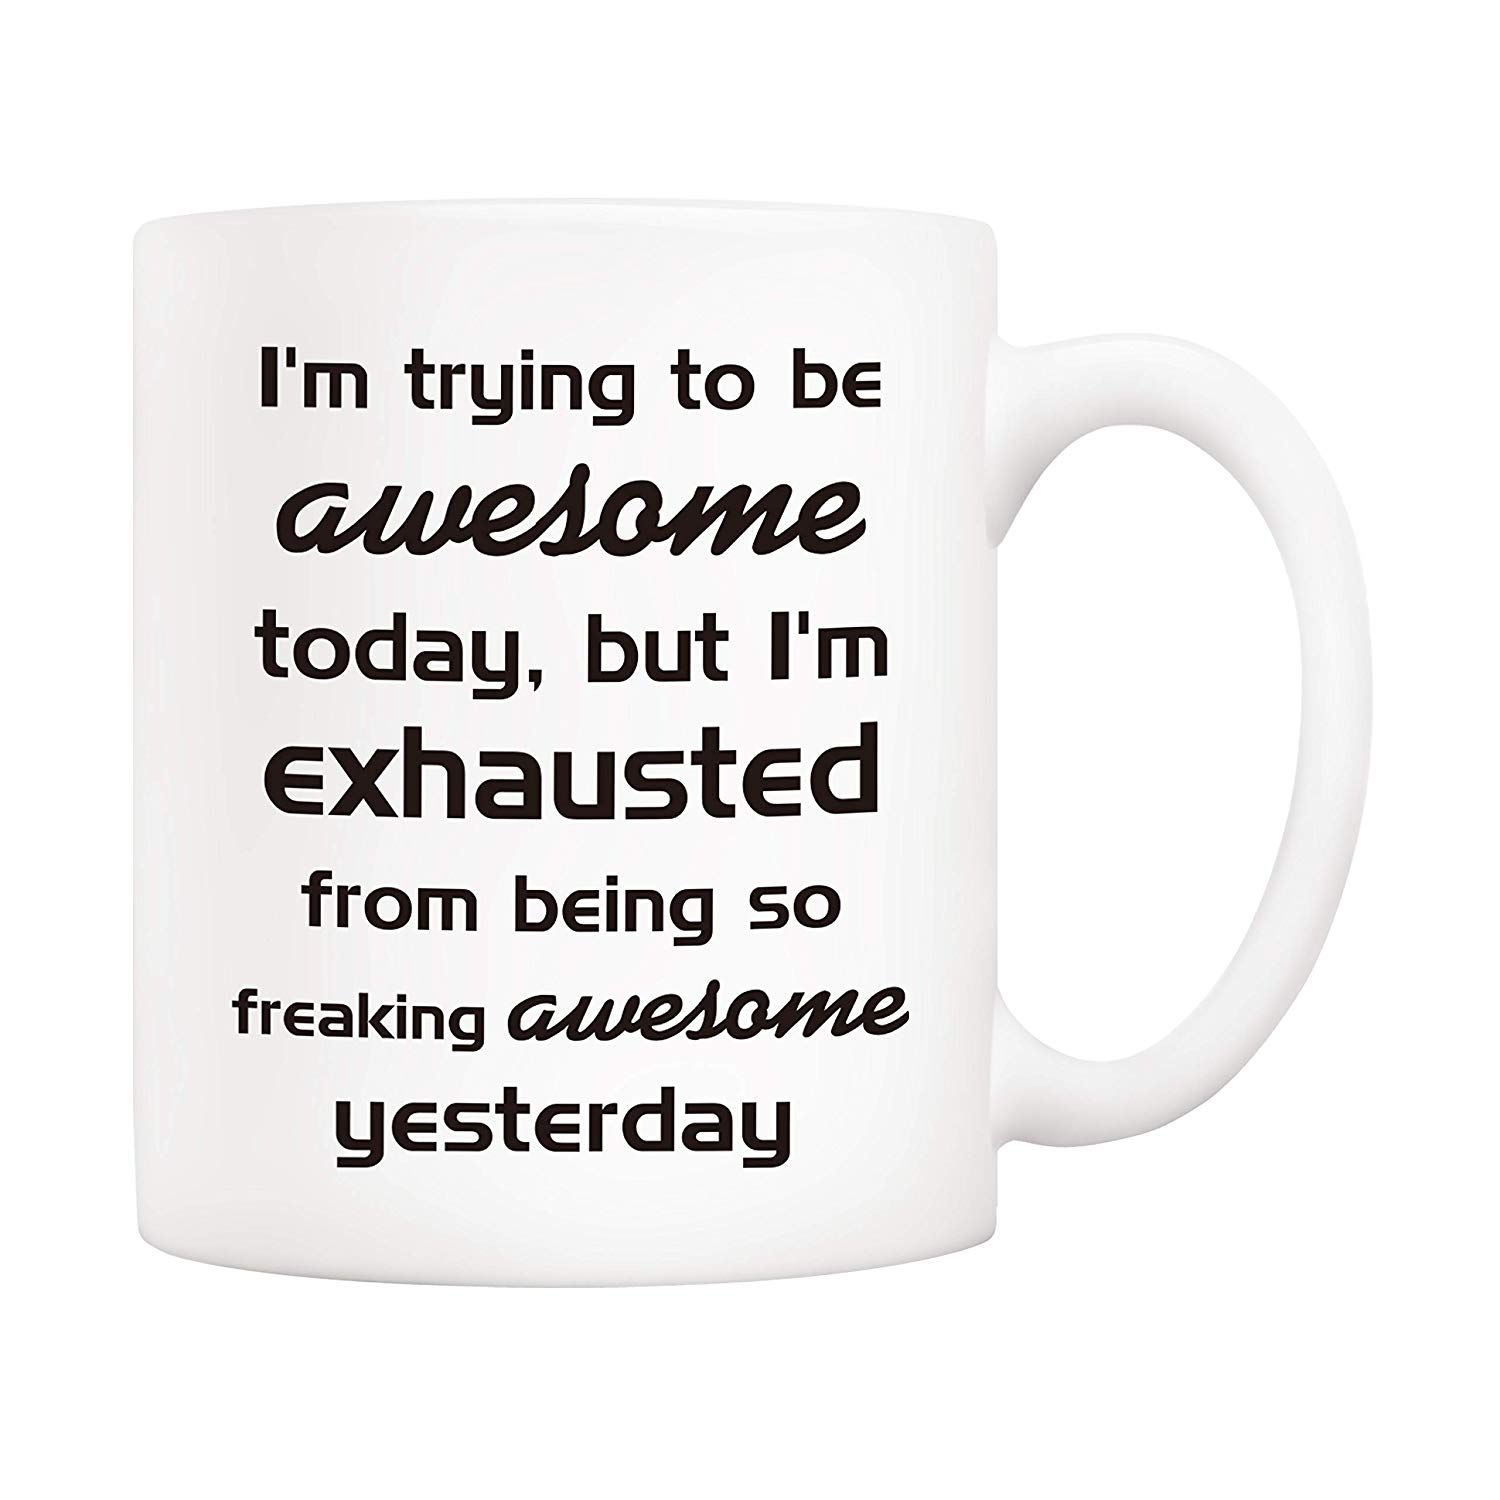 GiftsCoffee Mug I'm Trying To Be Awesome Today But I'm Exhausted From Being So Freaking Awesome Yesterday Ceramic Cups image